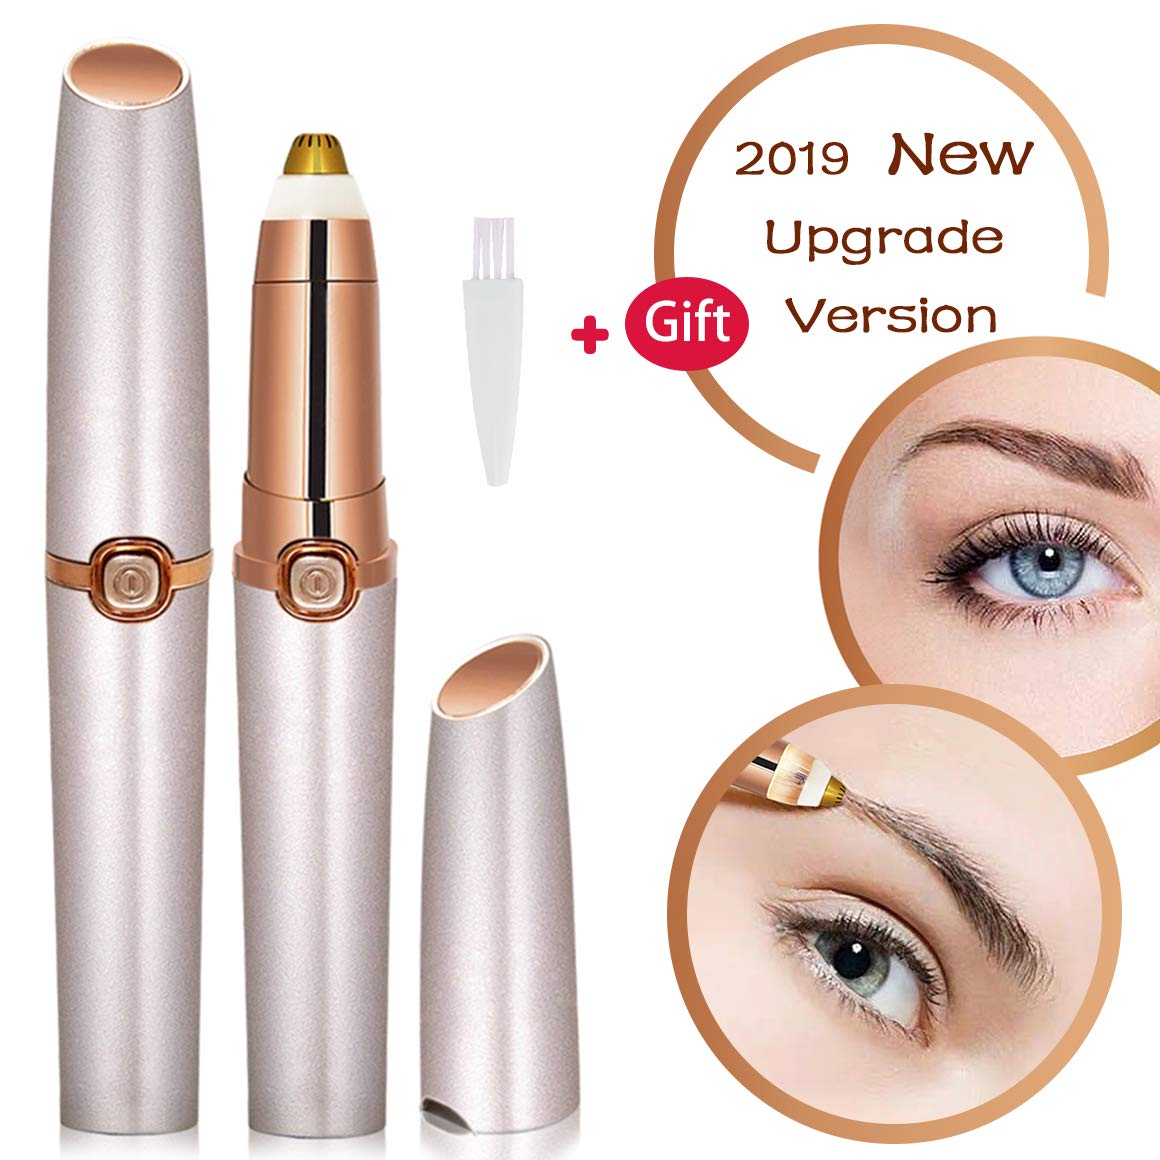 Eyebrow Trimmer For Women Mother's Day Eyebrow Hair Remover Electric Painless Ficial Hair Remover(Battery NOT Included)